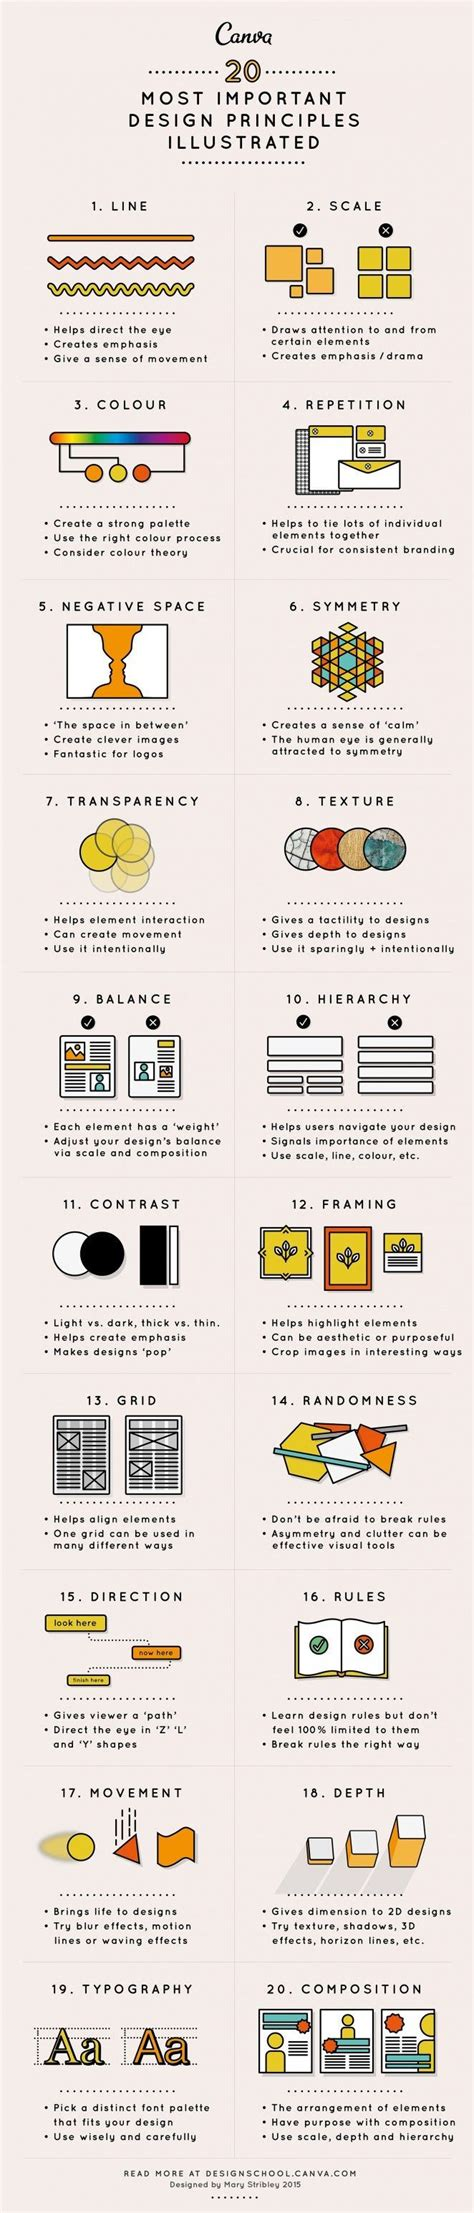 design elements theory design elements and principles tips and inspiration by